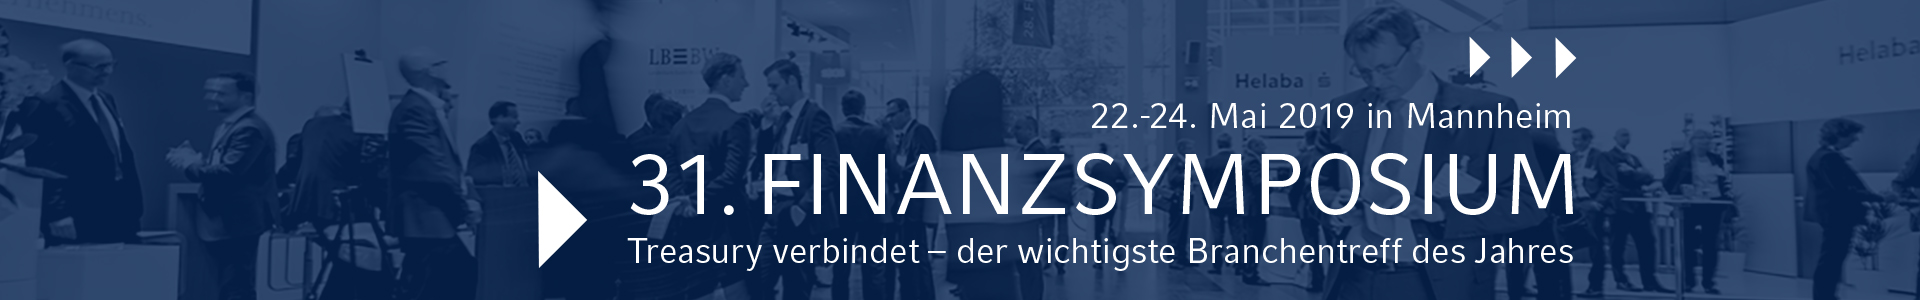 Banner-Finanzsymposium-2019-with-text